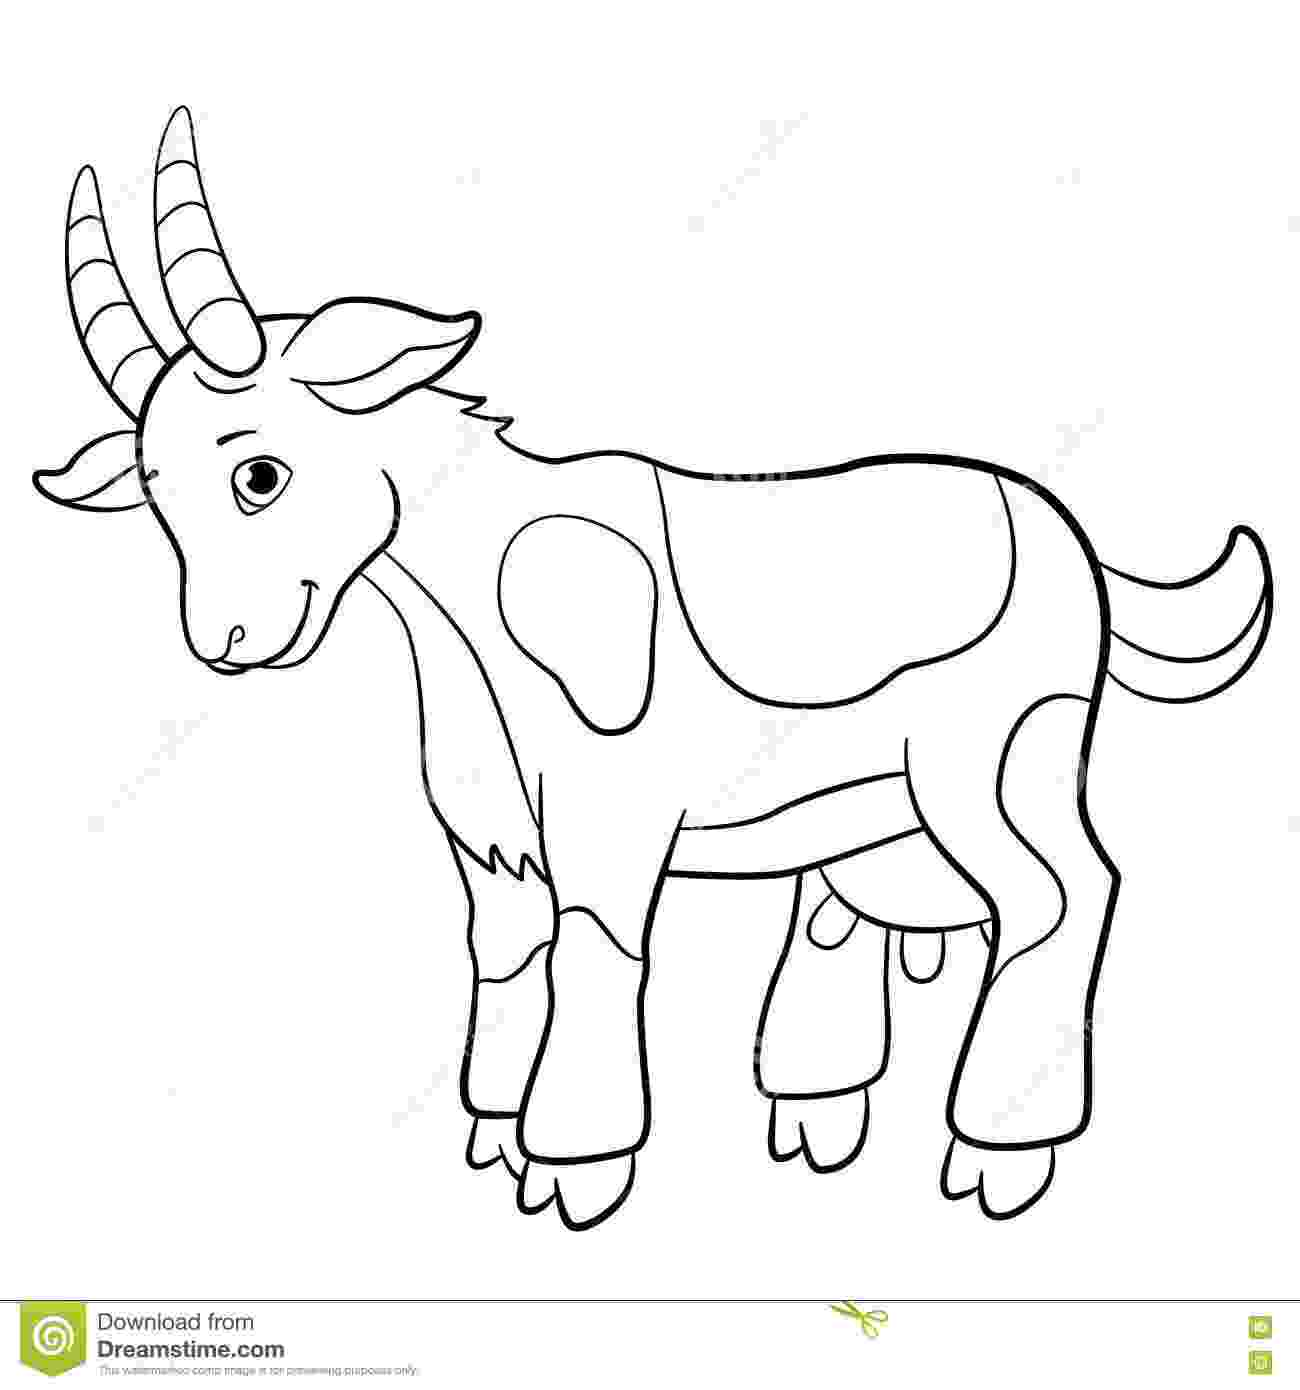 goat pictures to color goat coloring pages goat color to pictures